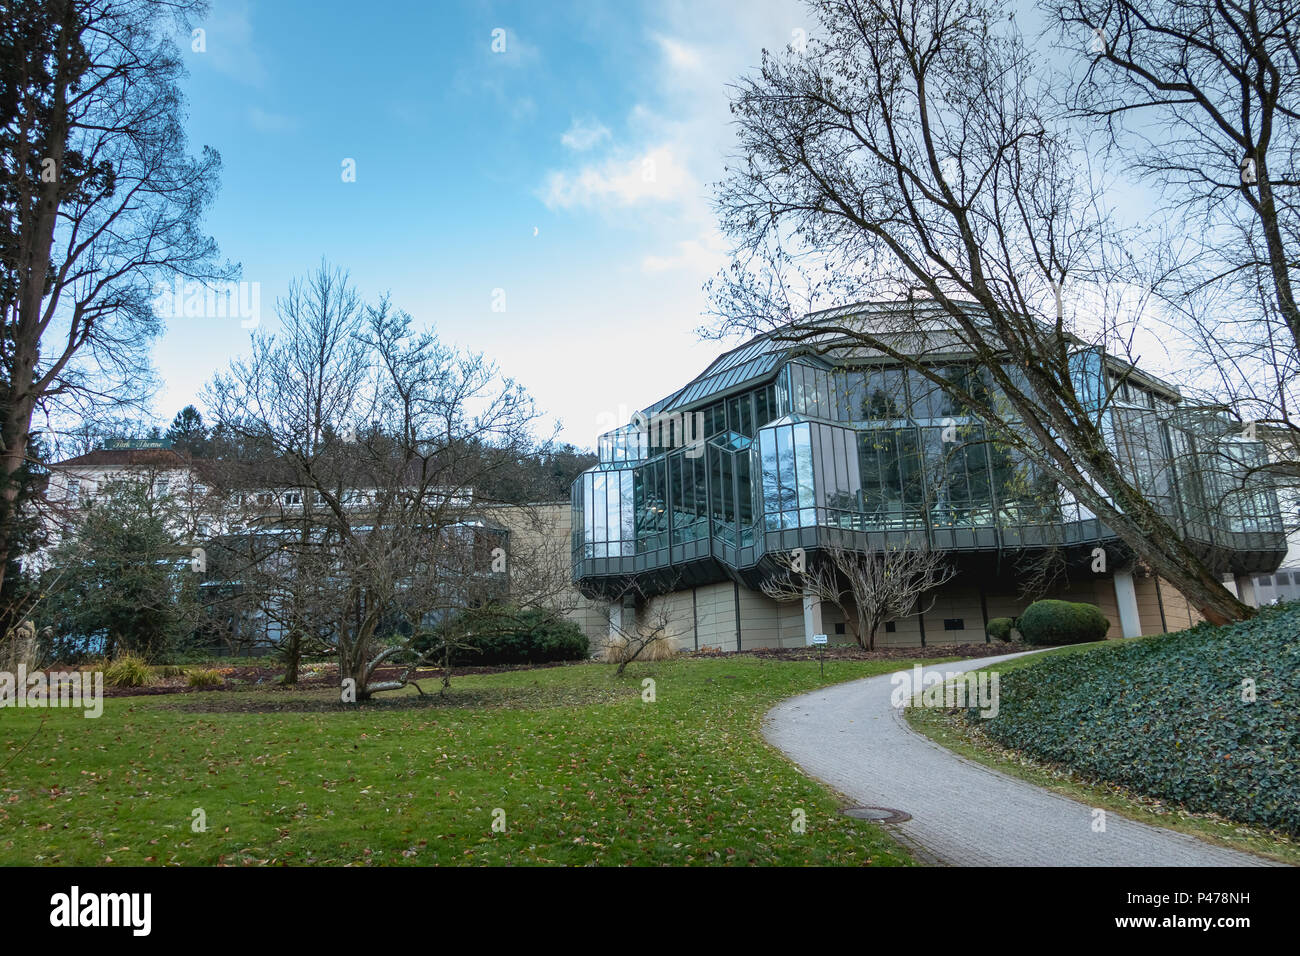 Badenweiler, Germany - December 24, 2017: Cassiopeia thermal baths architecture detail seen from the park on a winter day Stock Photo